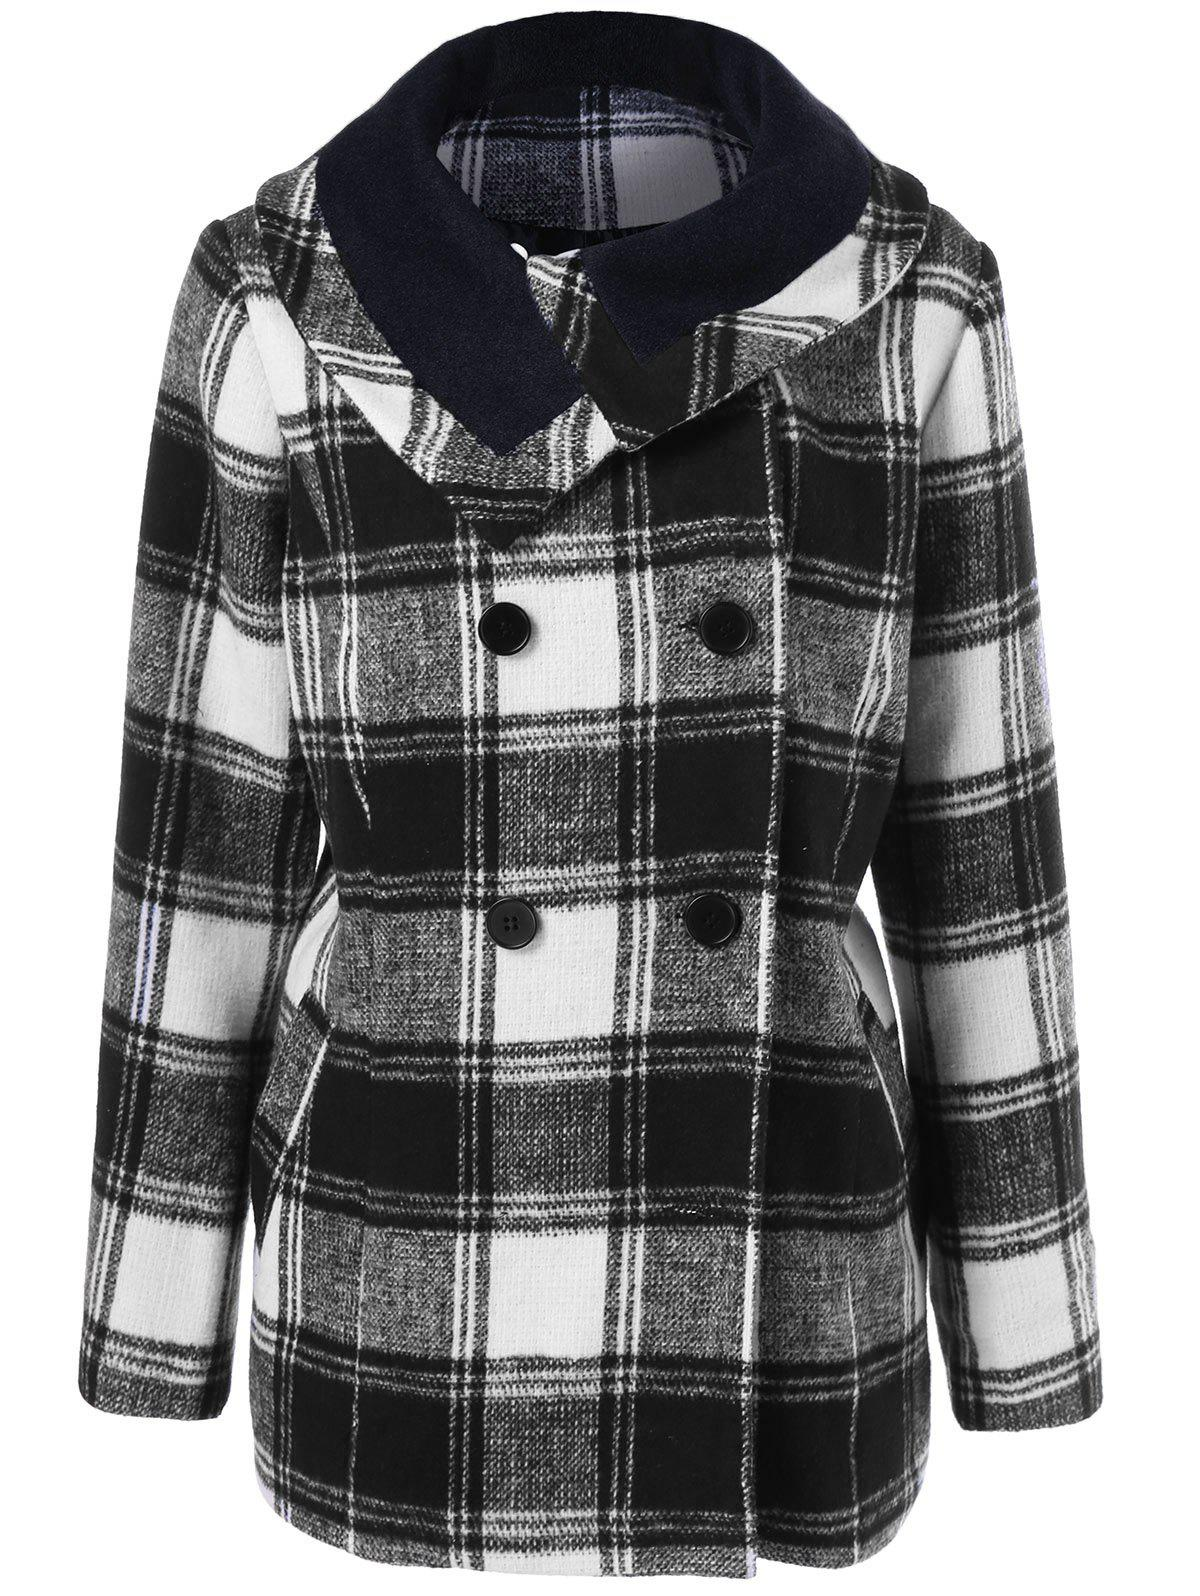 Find a full collection of Women's Plus Size WOMEN'S PLUS SIZE,Plus Size Coats in modern and classic styles, also find plus size dresses, jeans, career, pants, shirts, sweaters, coats and more item(s) added to shopping bag.